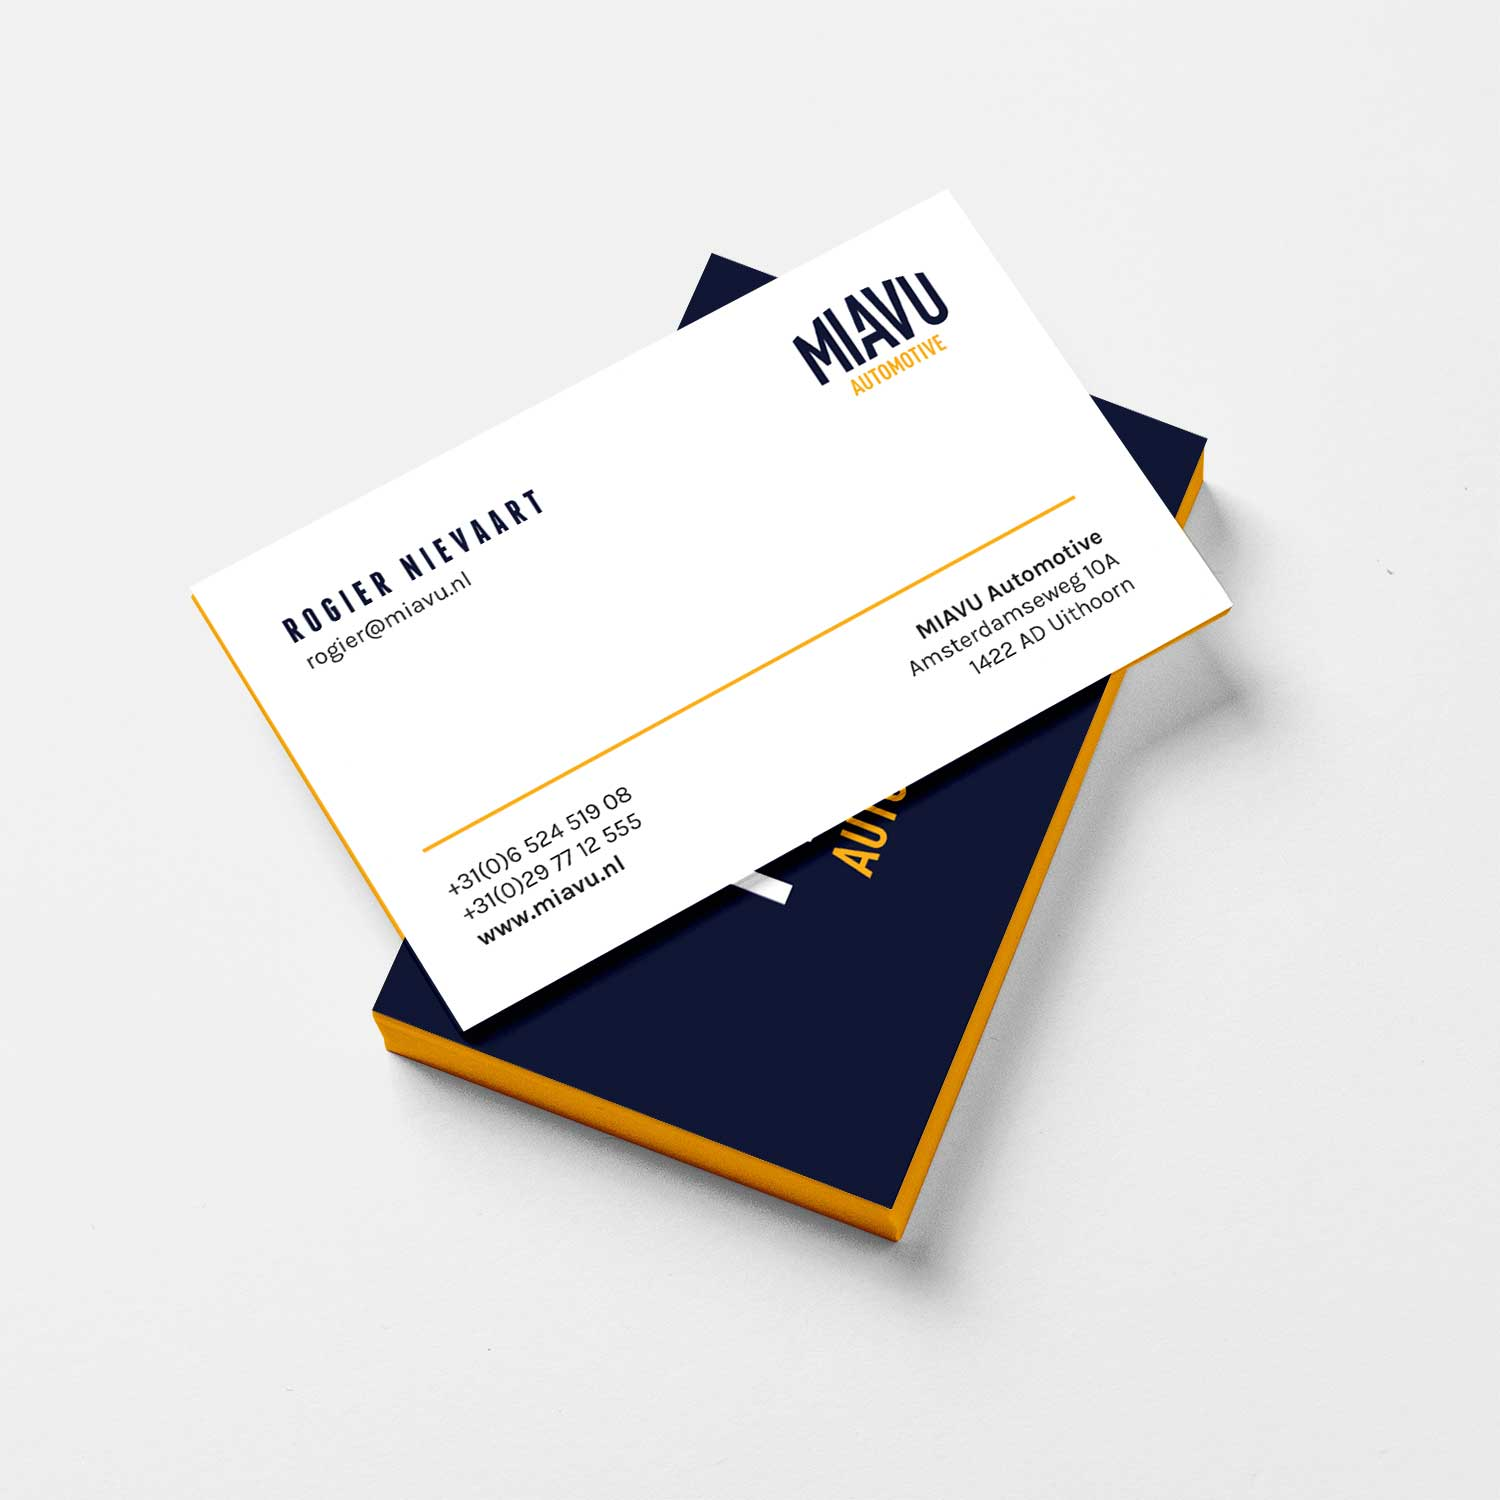 MIAVU Business Cards